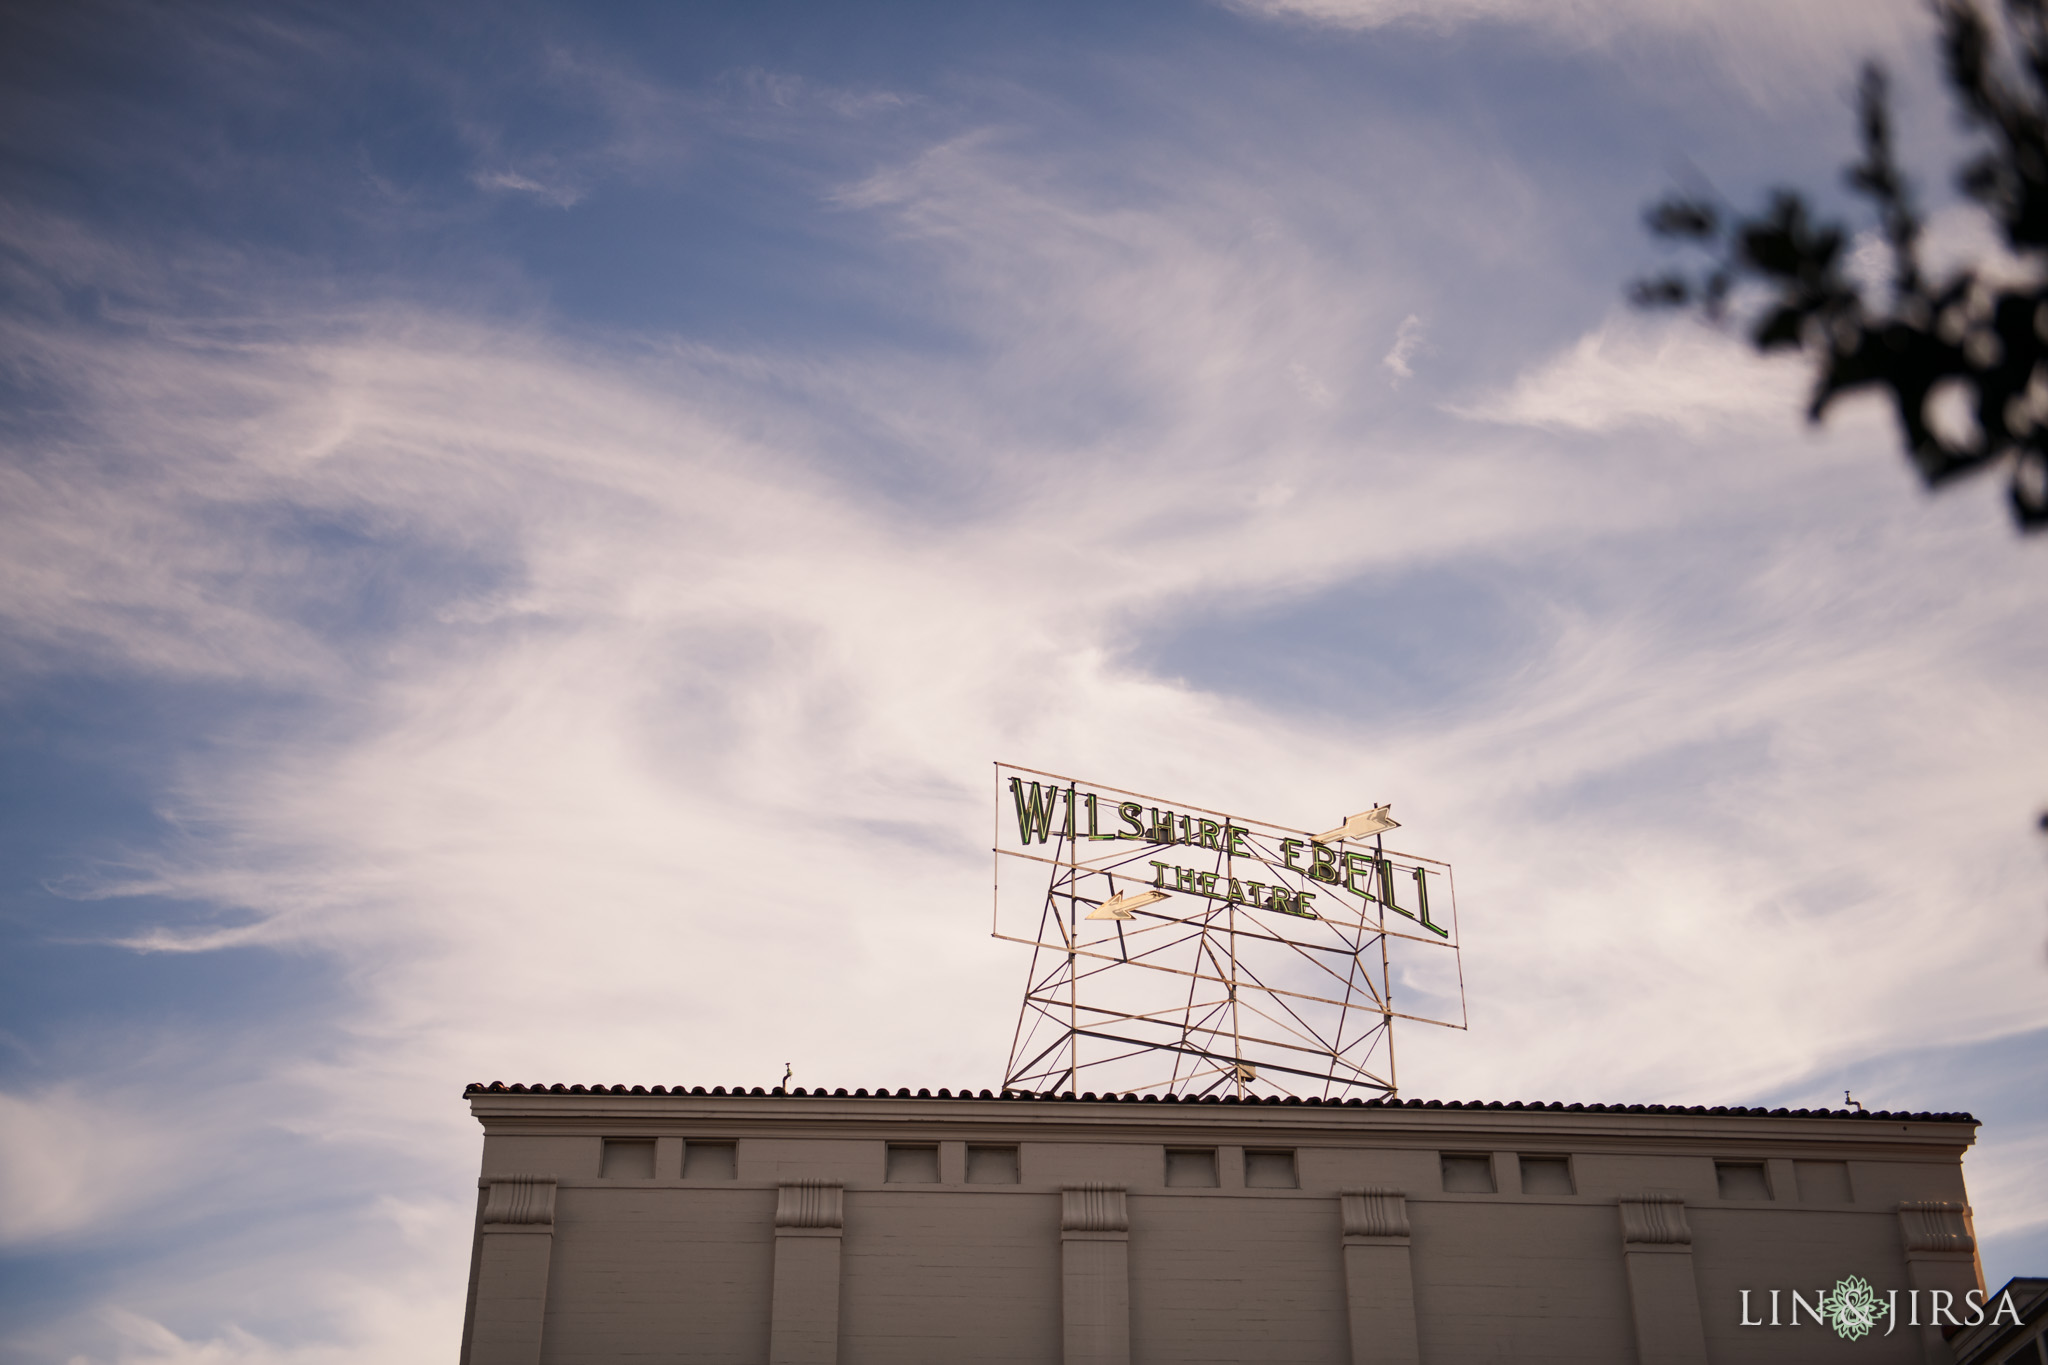 031 wilshire ebell theatre los angeles wedding photography